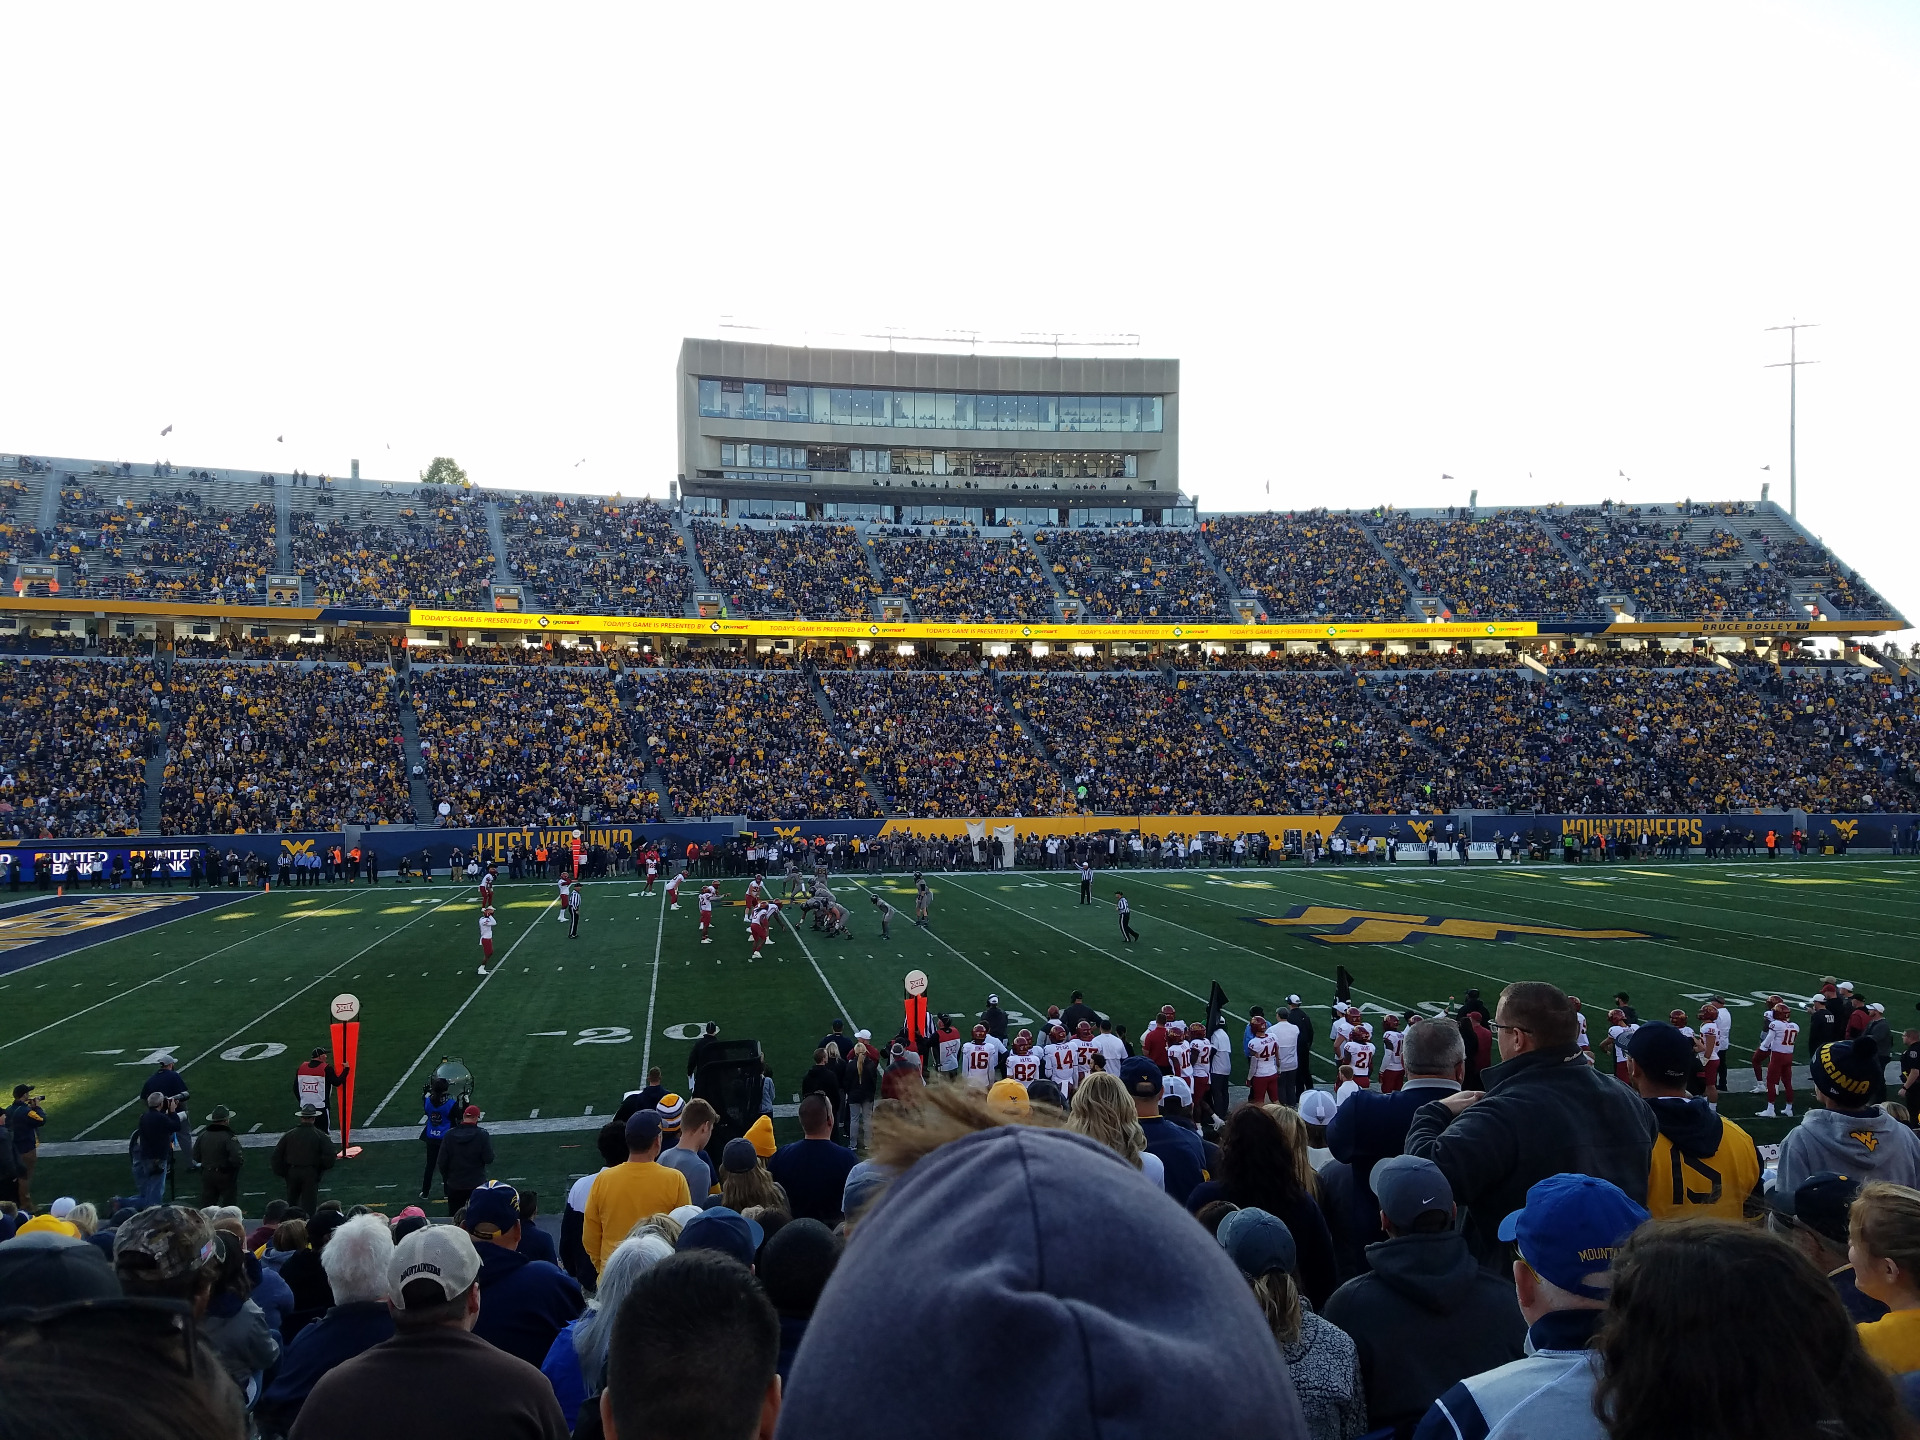 Mountaineer Field Section 104 Row 17 Seat 29